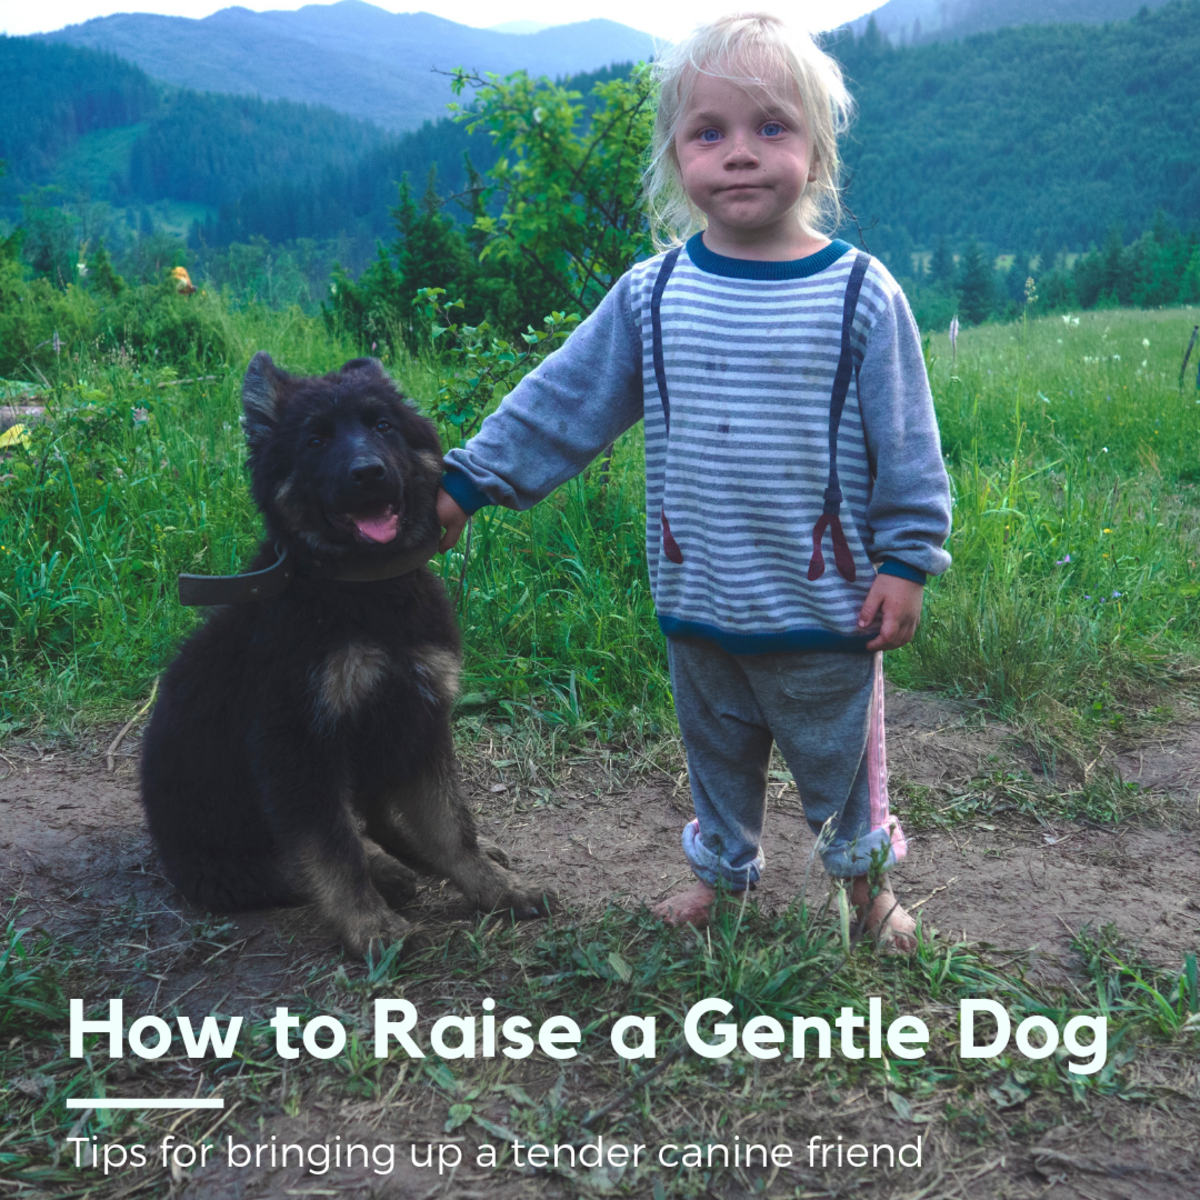 Tips for Raising a Gentle Dog